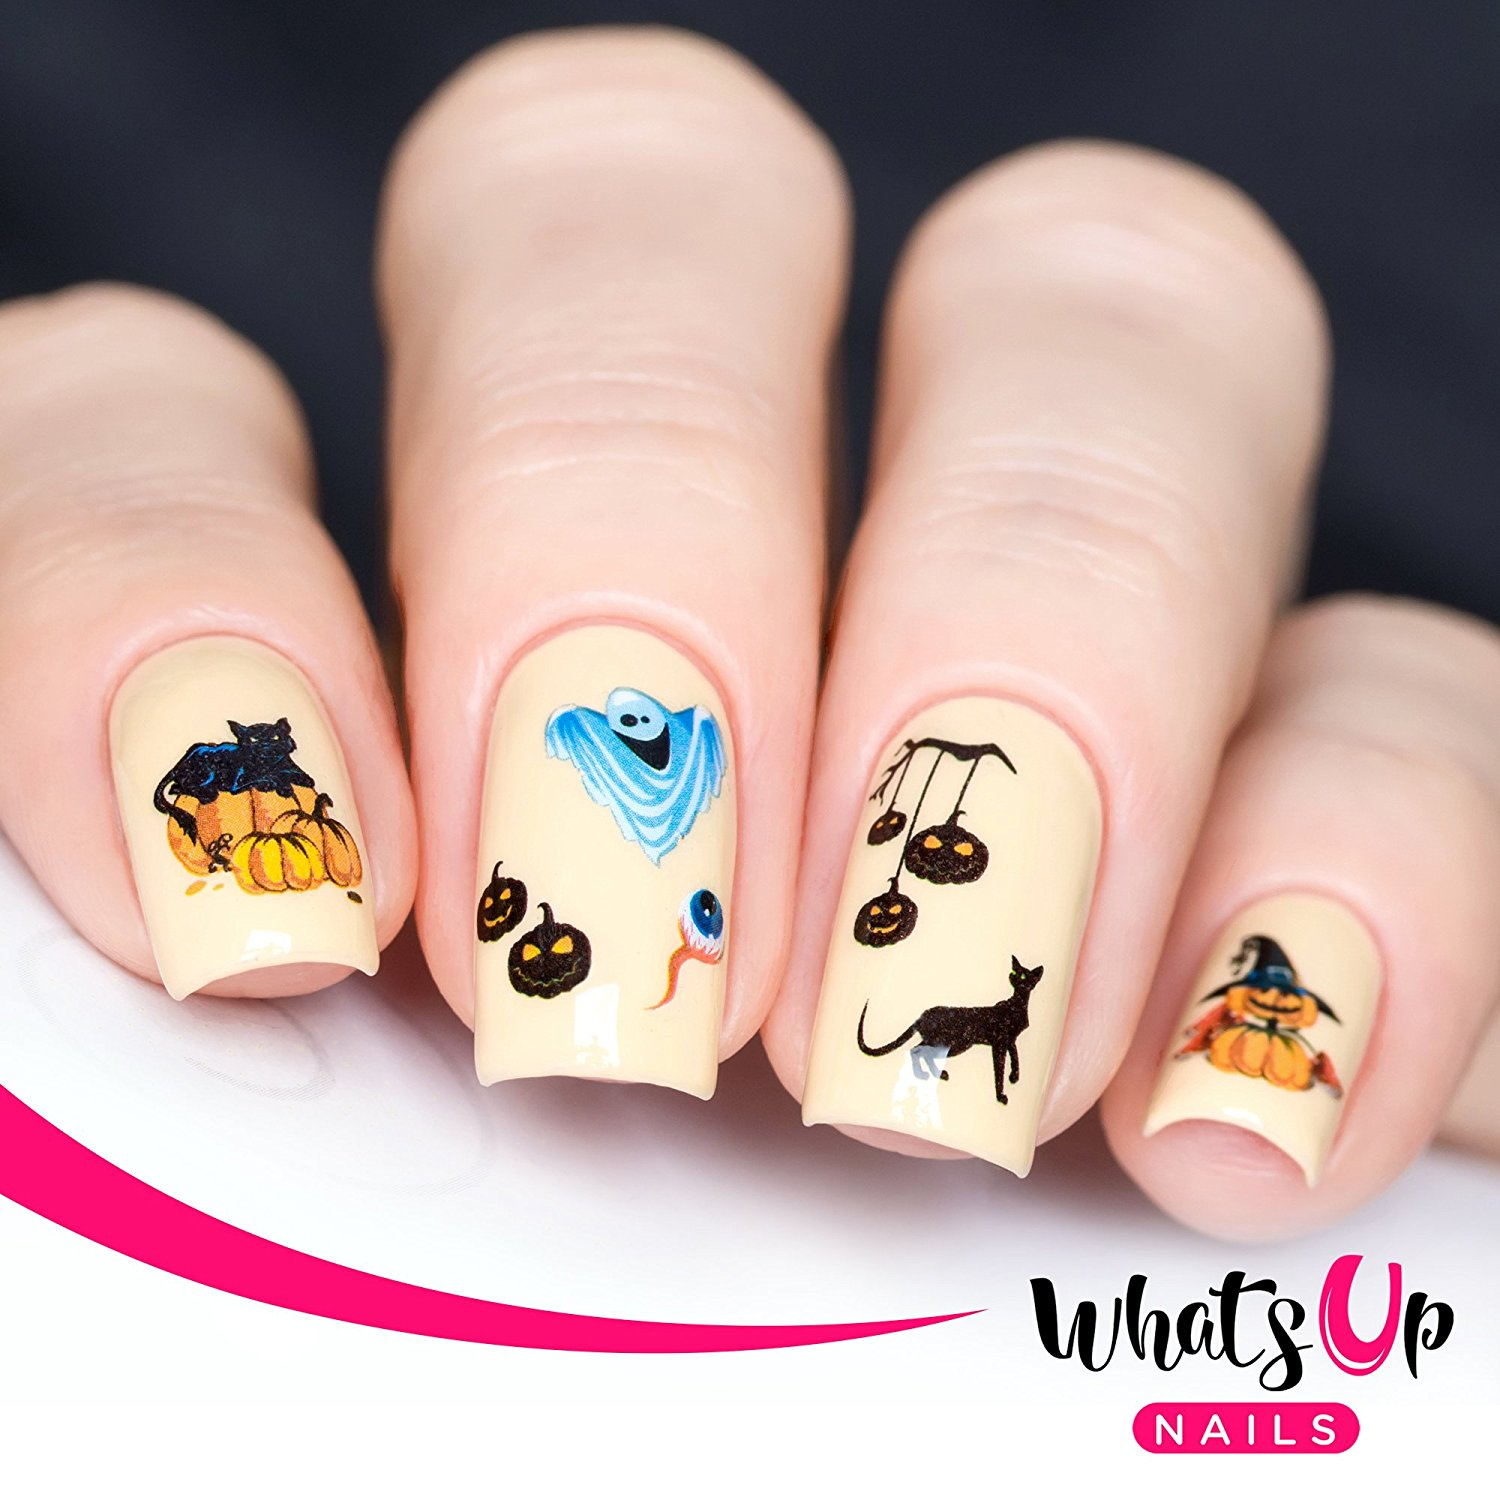 Cheap Nail Design In Water Find Nail Design In Water Deals On Line